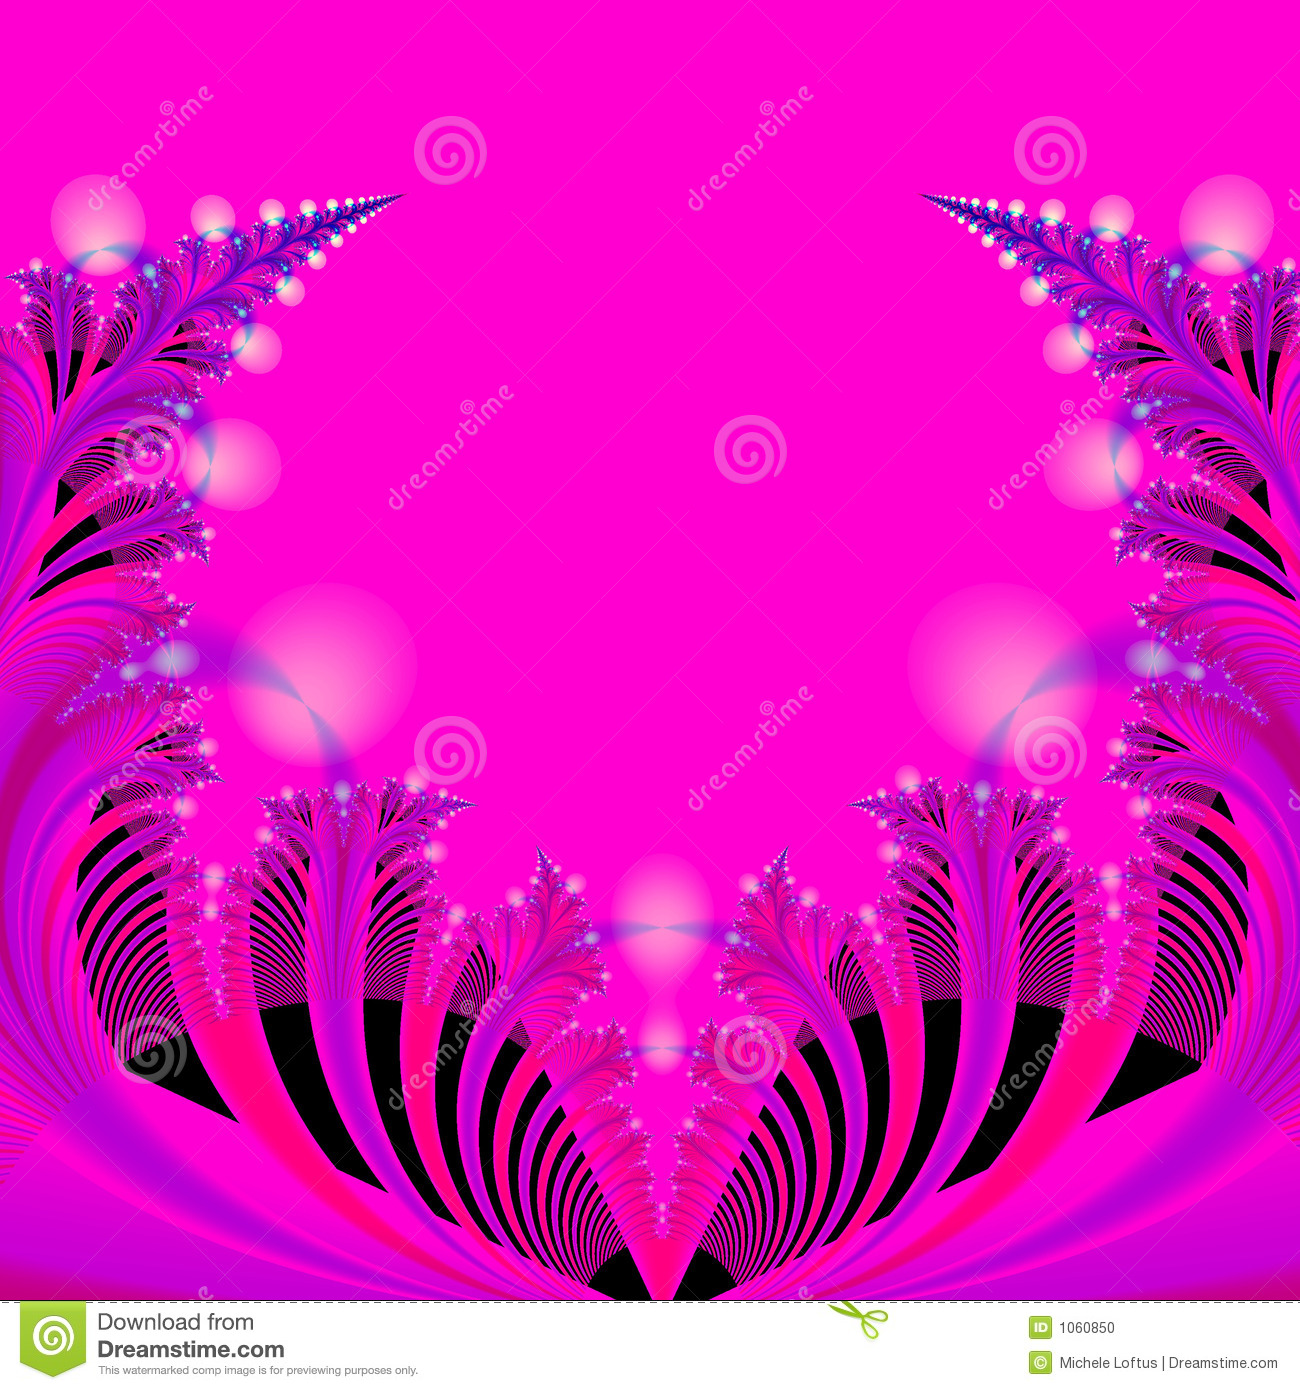 hot pink and blue backgrounds - photo #17